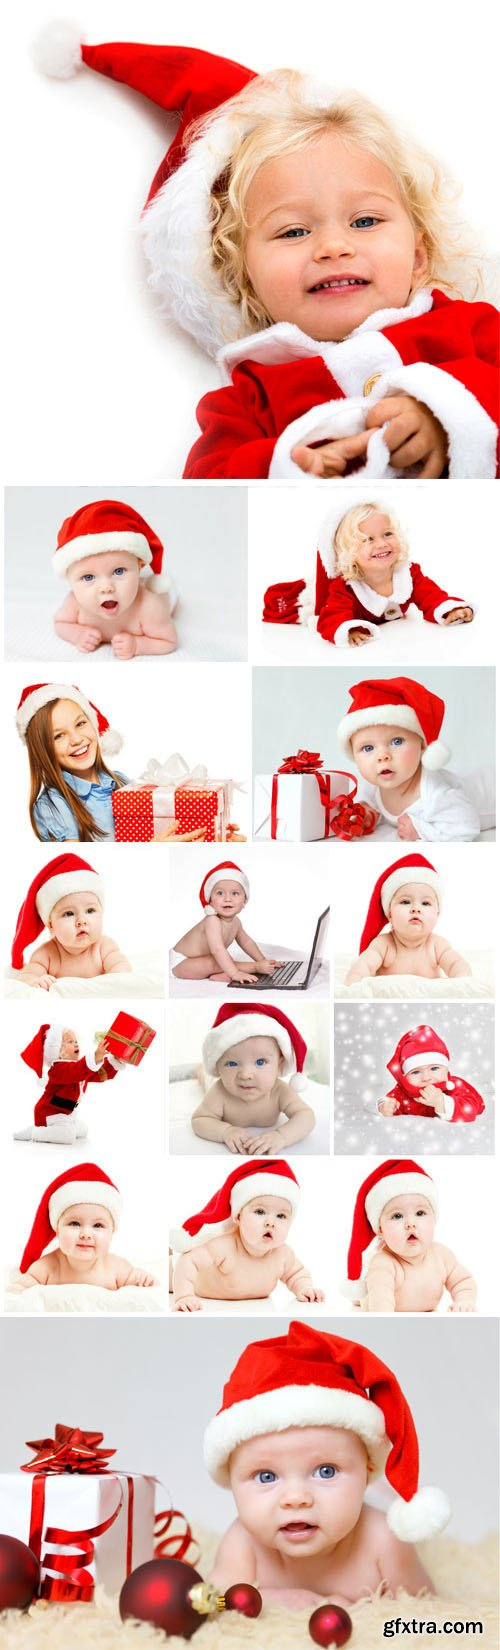 New Year and Christmas stock photos №43